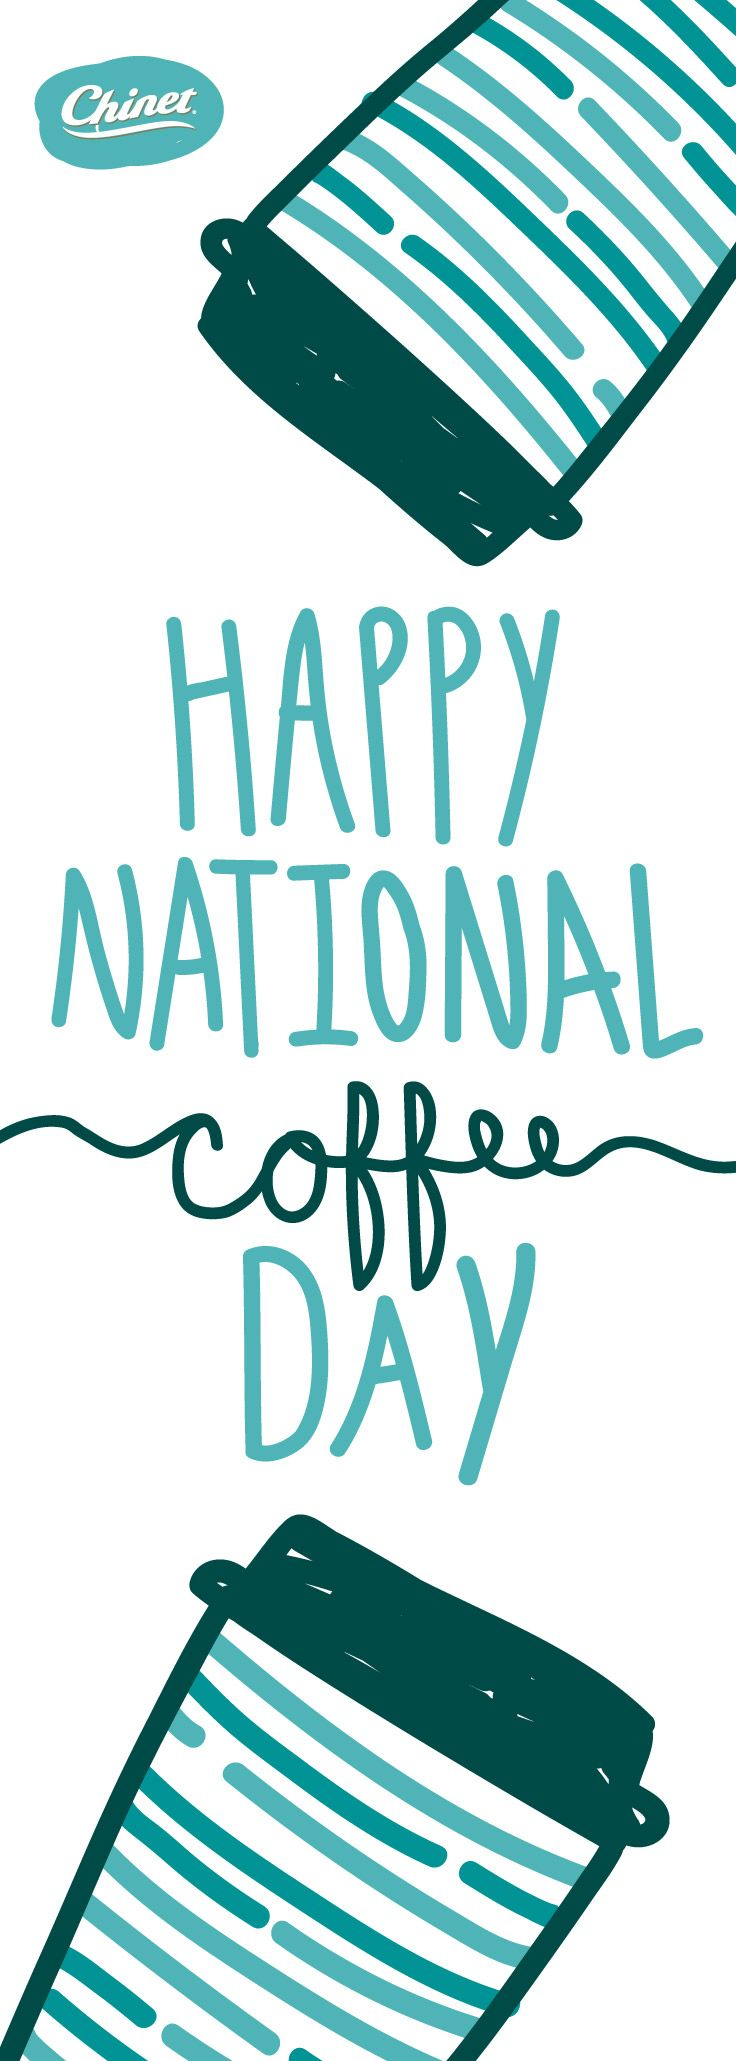 Celebrate National Coffee Day 2017 With These Easy Tips